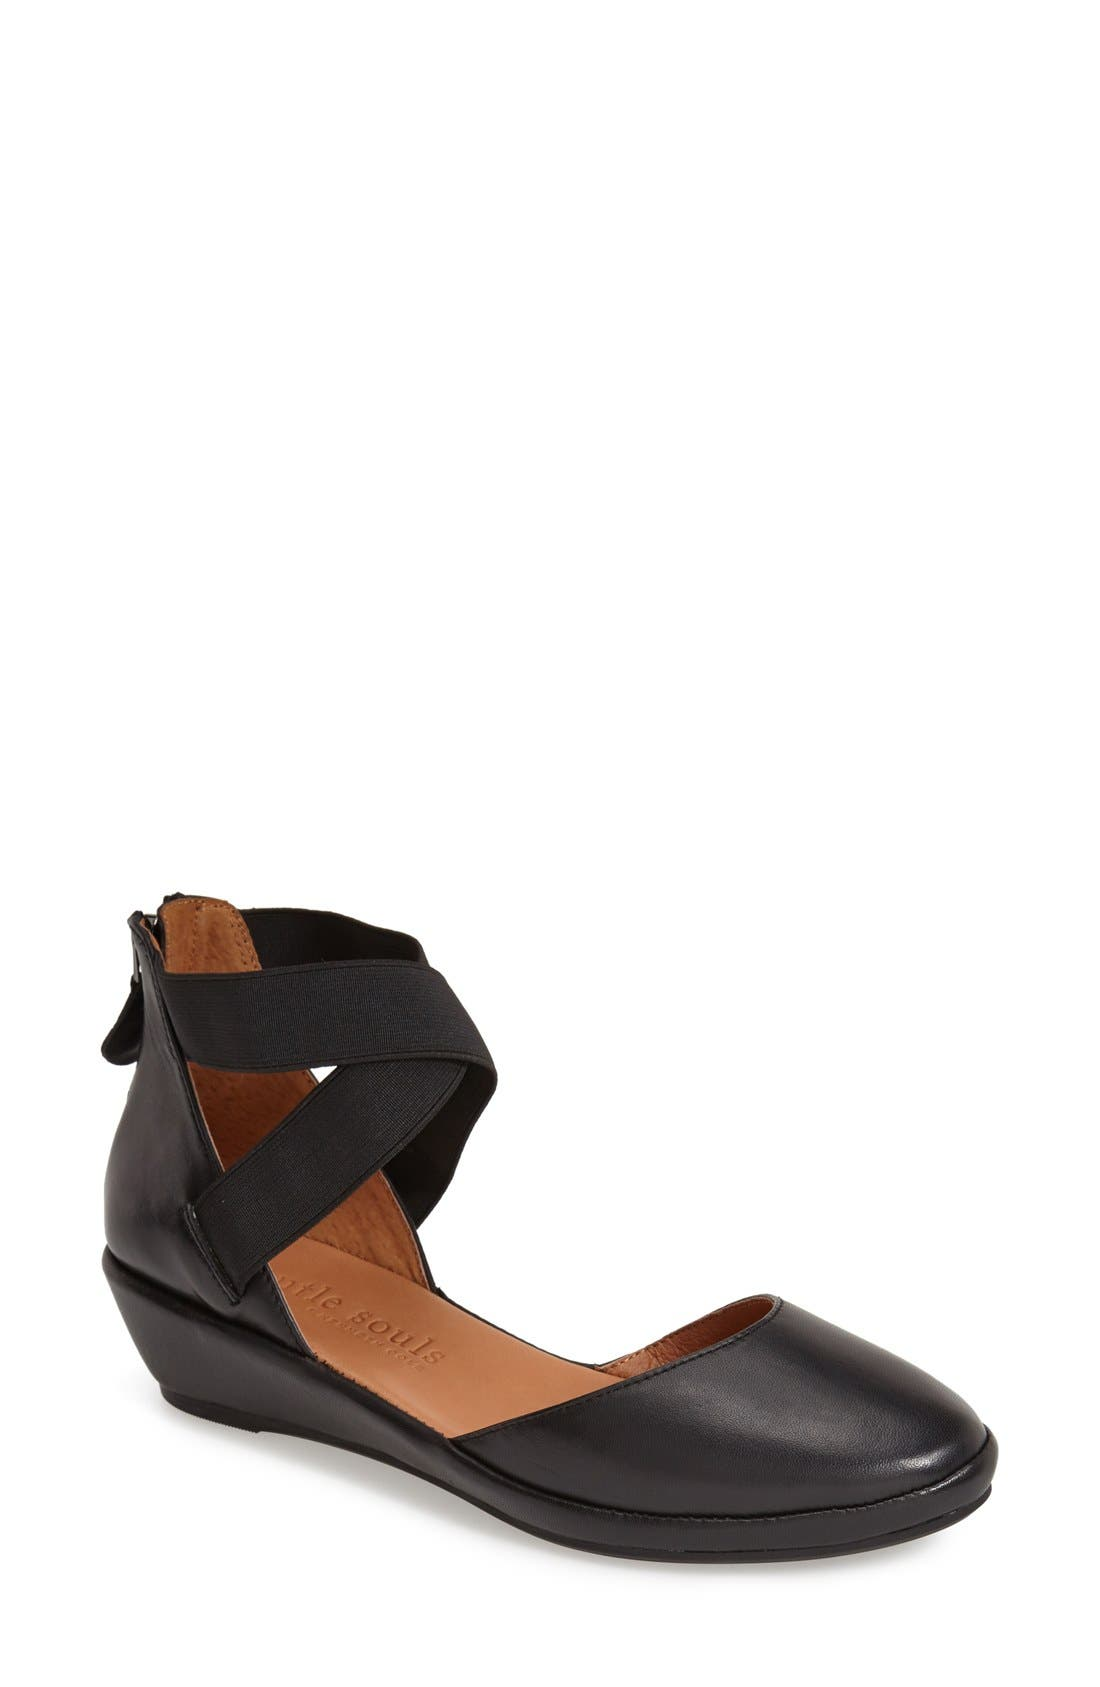 by Kenneth Cole 'Noa' Elastic Strap d'Orsay Sandal,                             Main thumbnail 1, color,                             BLACK